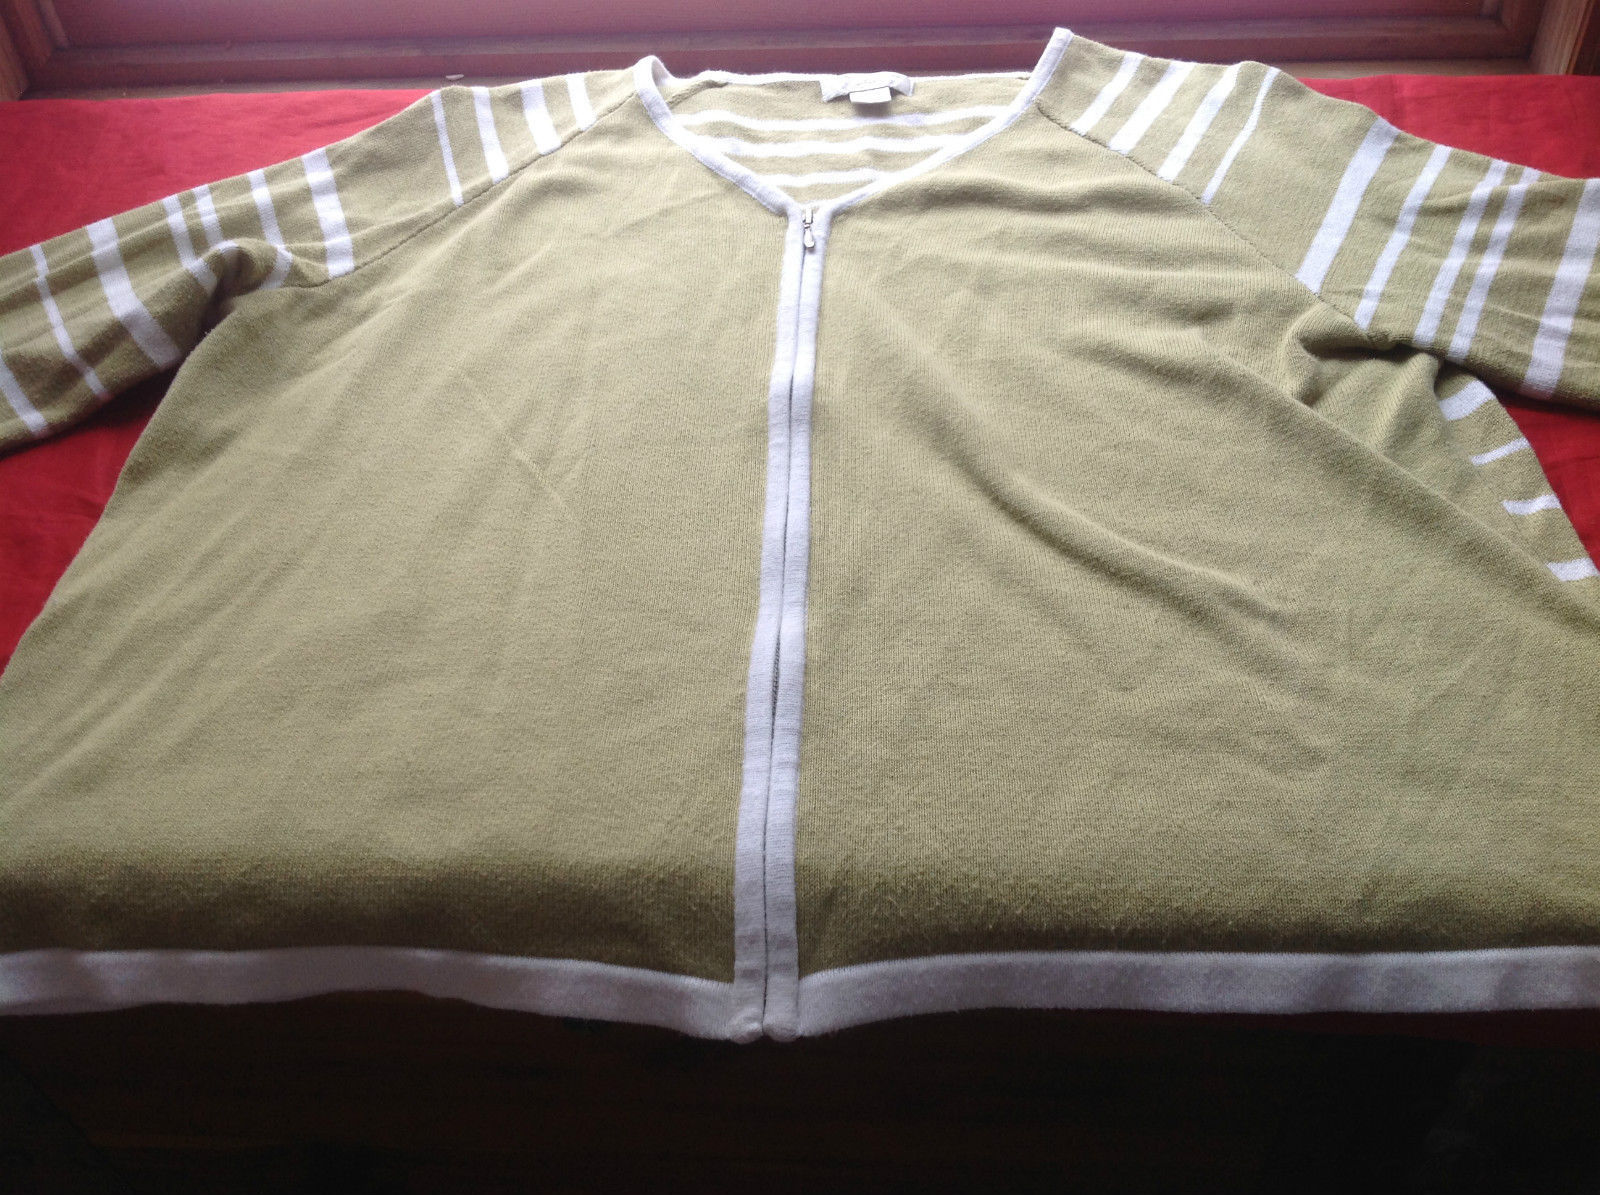 Christopher & Banks Lime/White Long Sleeve Sweater Full Zipper Closure Size XL